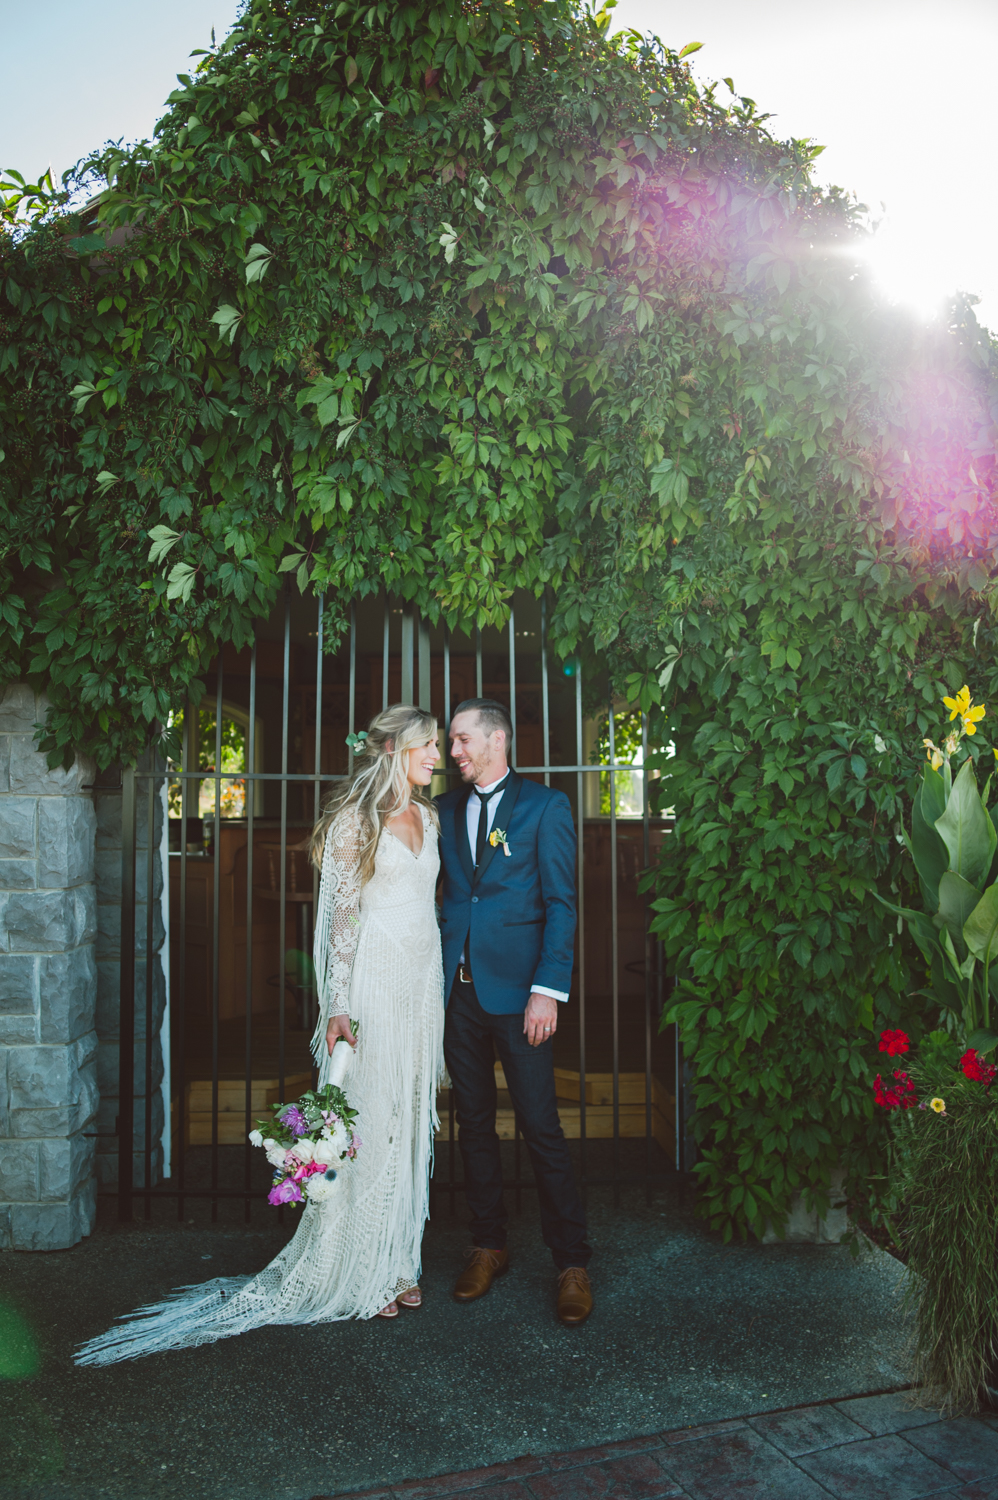 Kelowna Summer modern boho wedding-jessika hunter photo-22.JPG